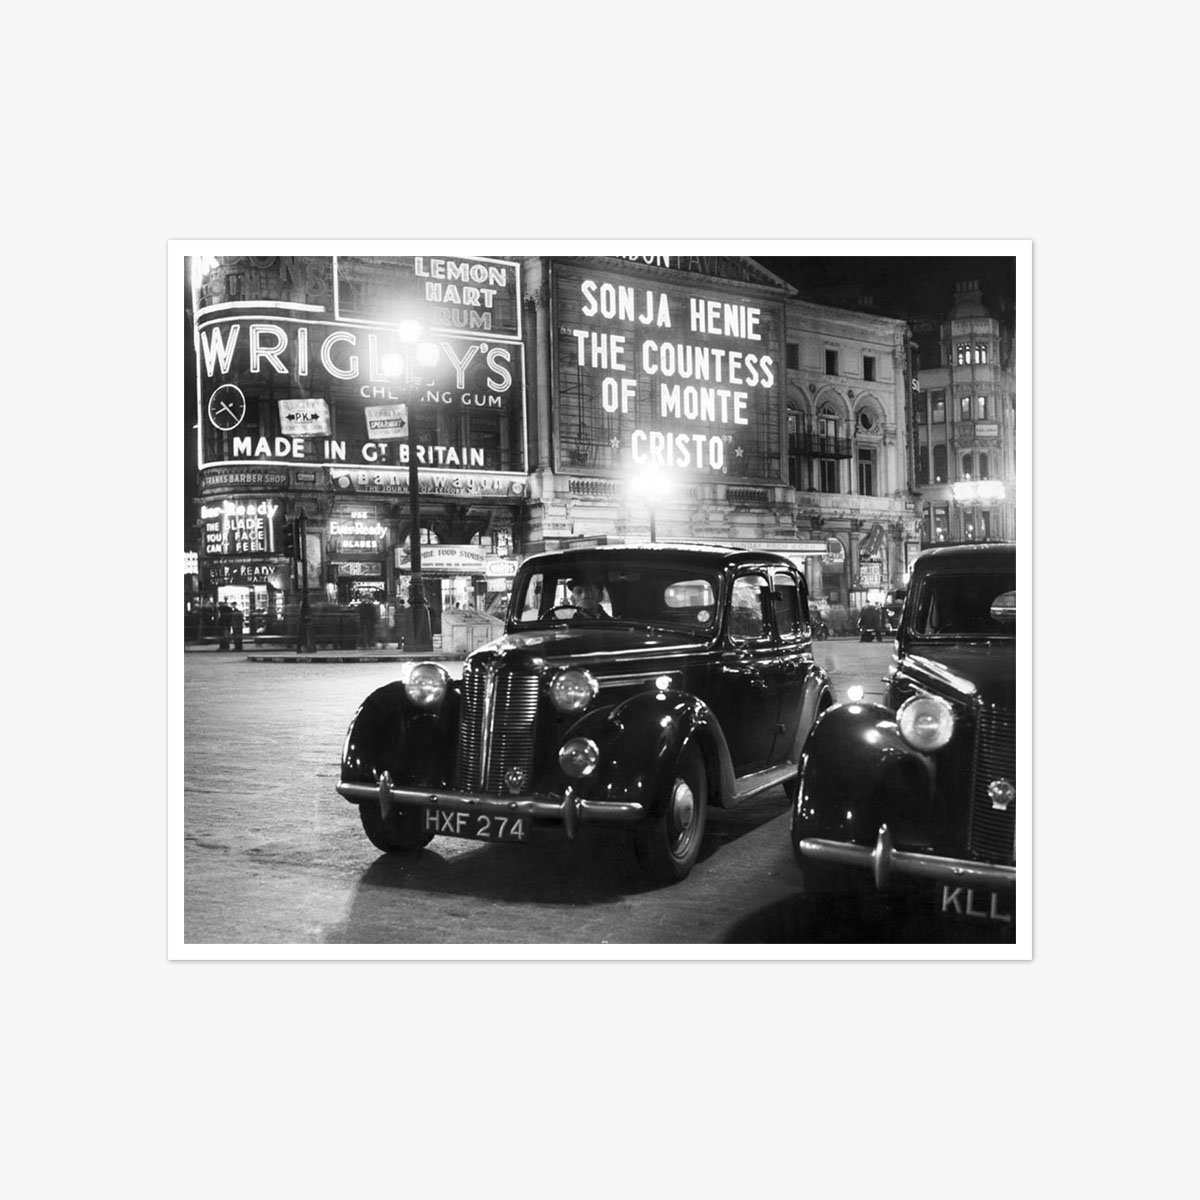 Piccadilly Circus 1949 by Herbert Mason